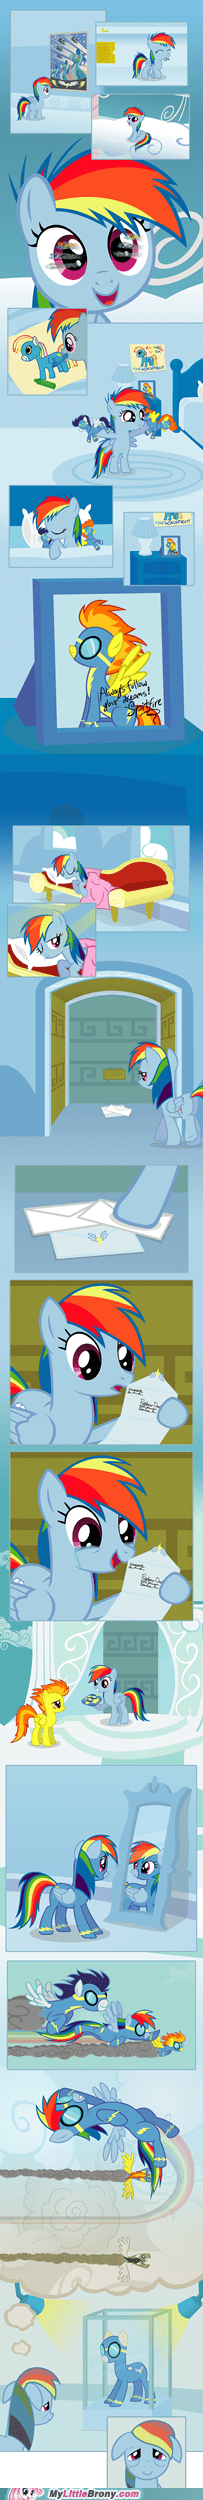 always follow your dreams comics filly rainbow dash - 5450371584